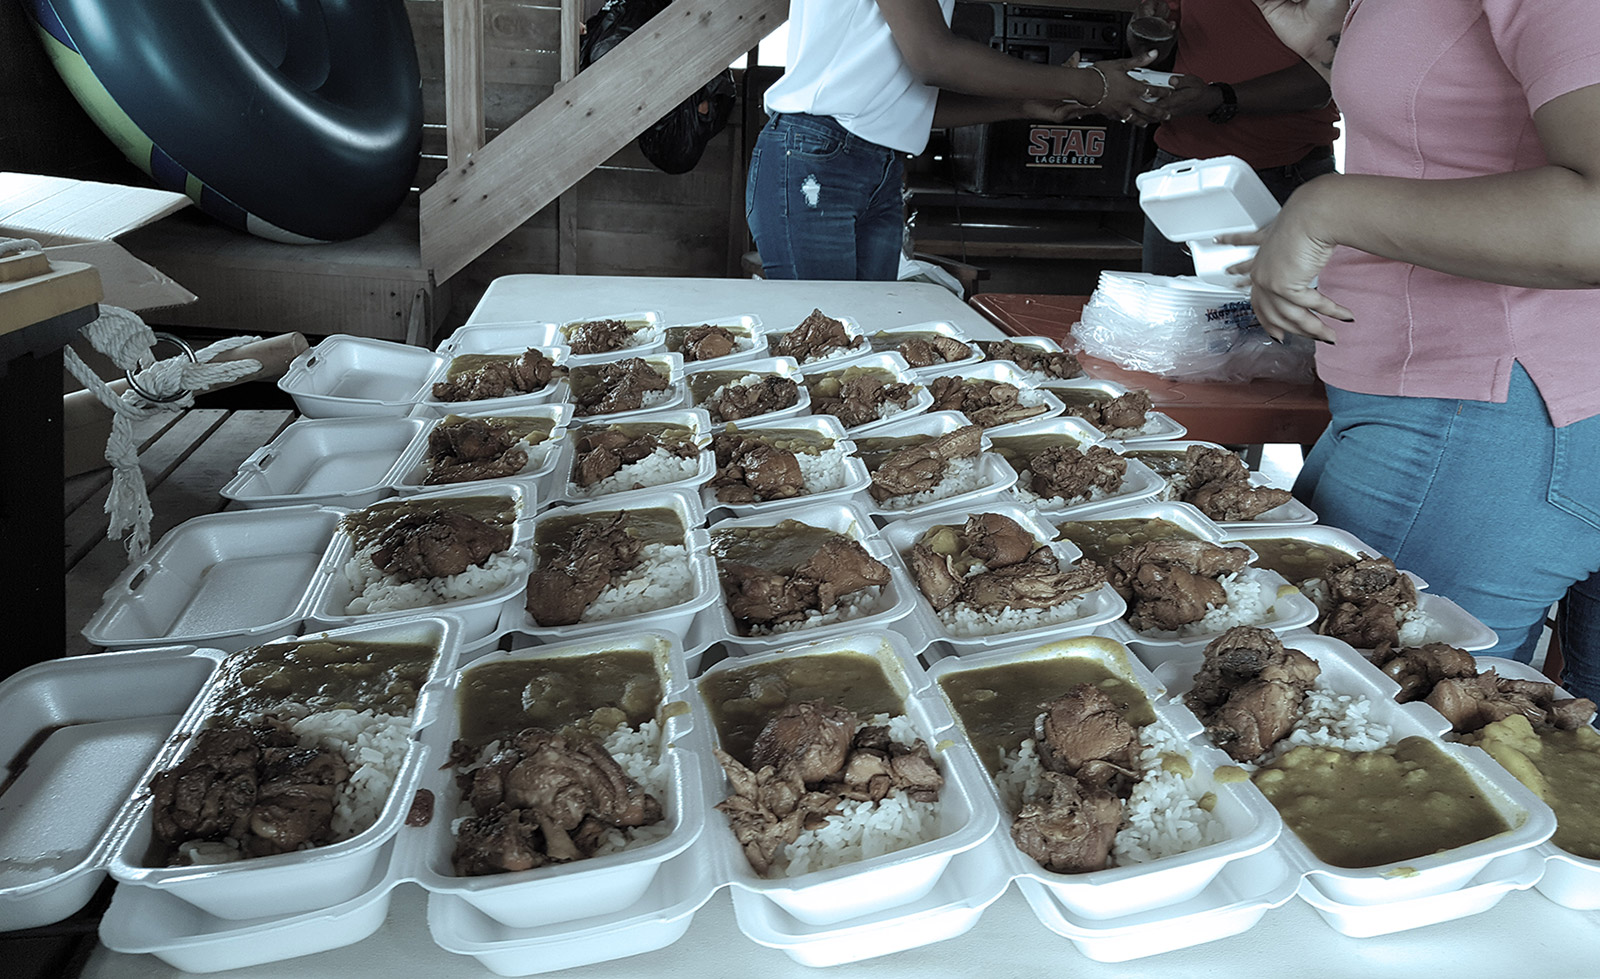 Hot Lunch and Necessities distributed in South flood relief